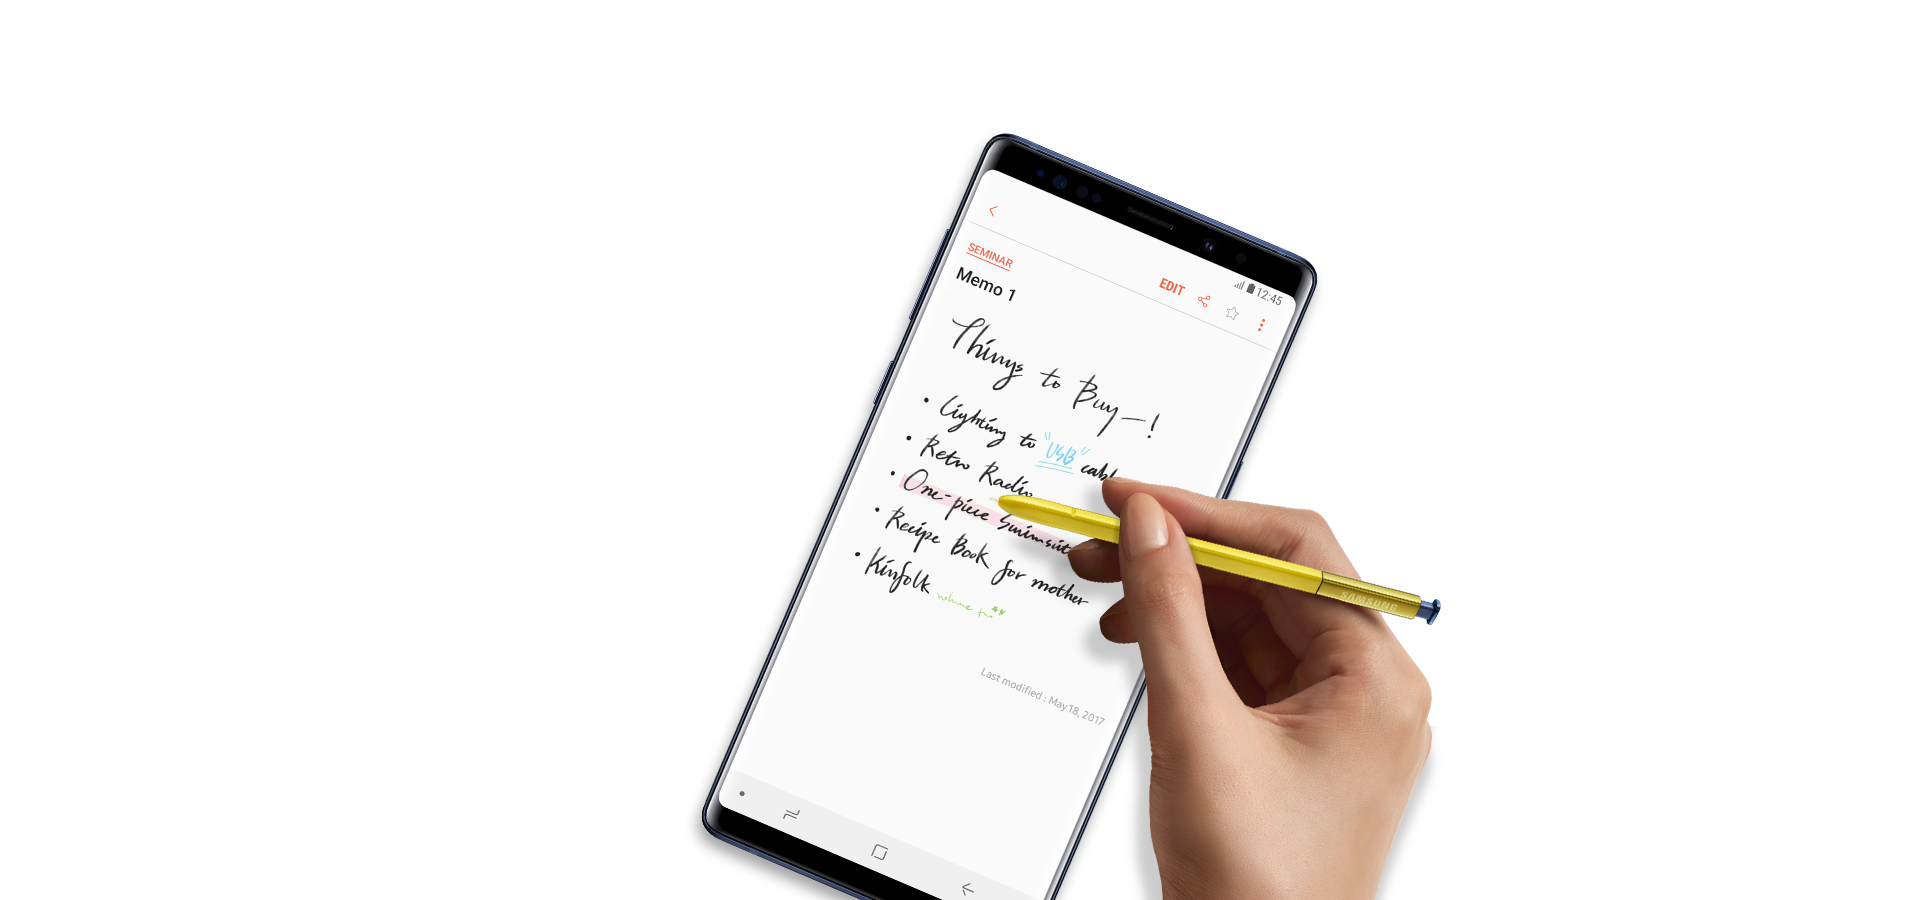 10 Best Apps for Samsung Galaxy Note 3